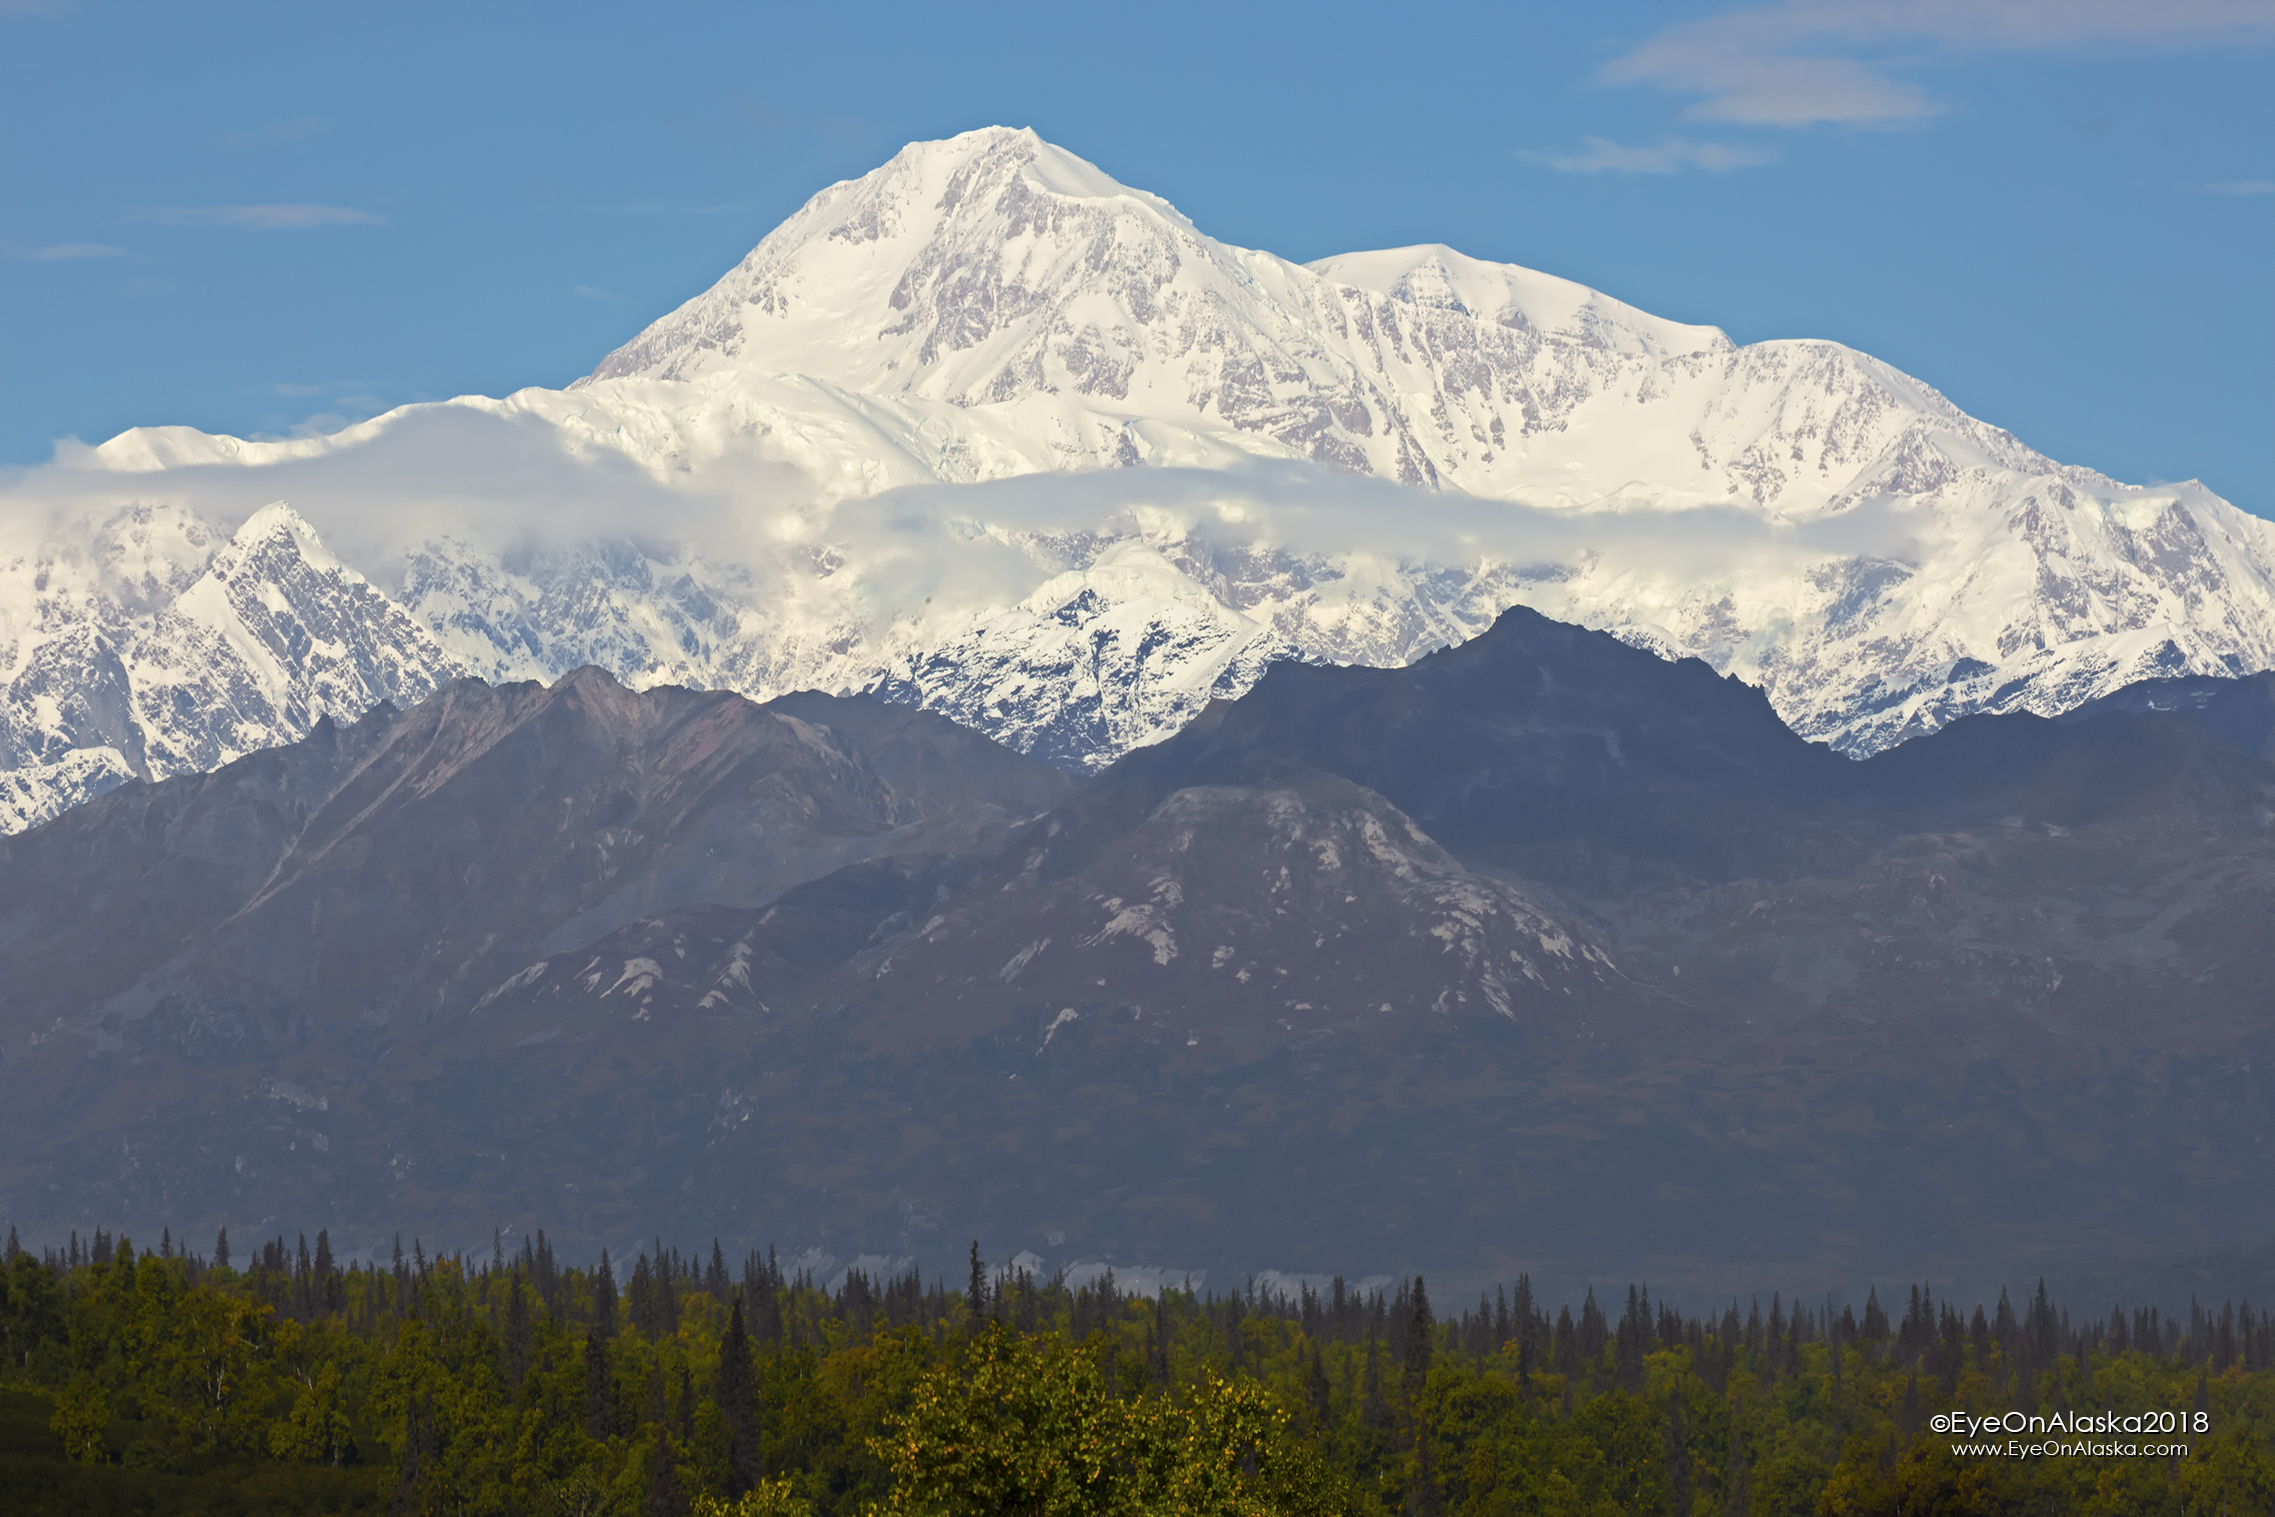 This is how to start a trip to Denali!  From the Denali View South rest area.  It's going to be a good trip.